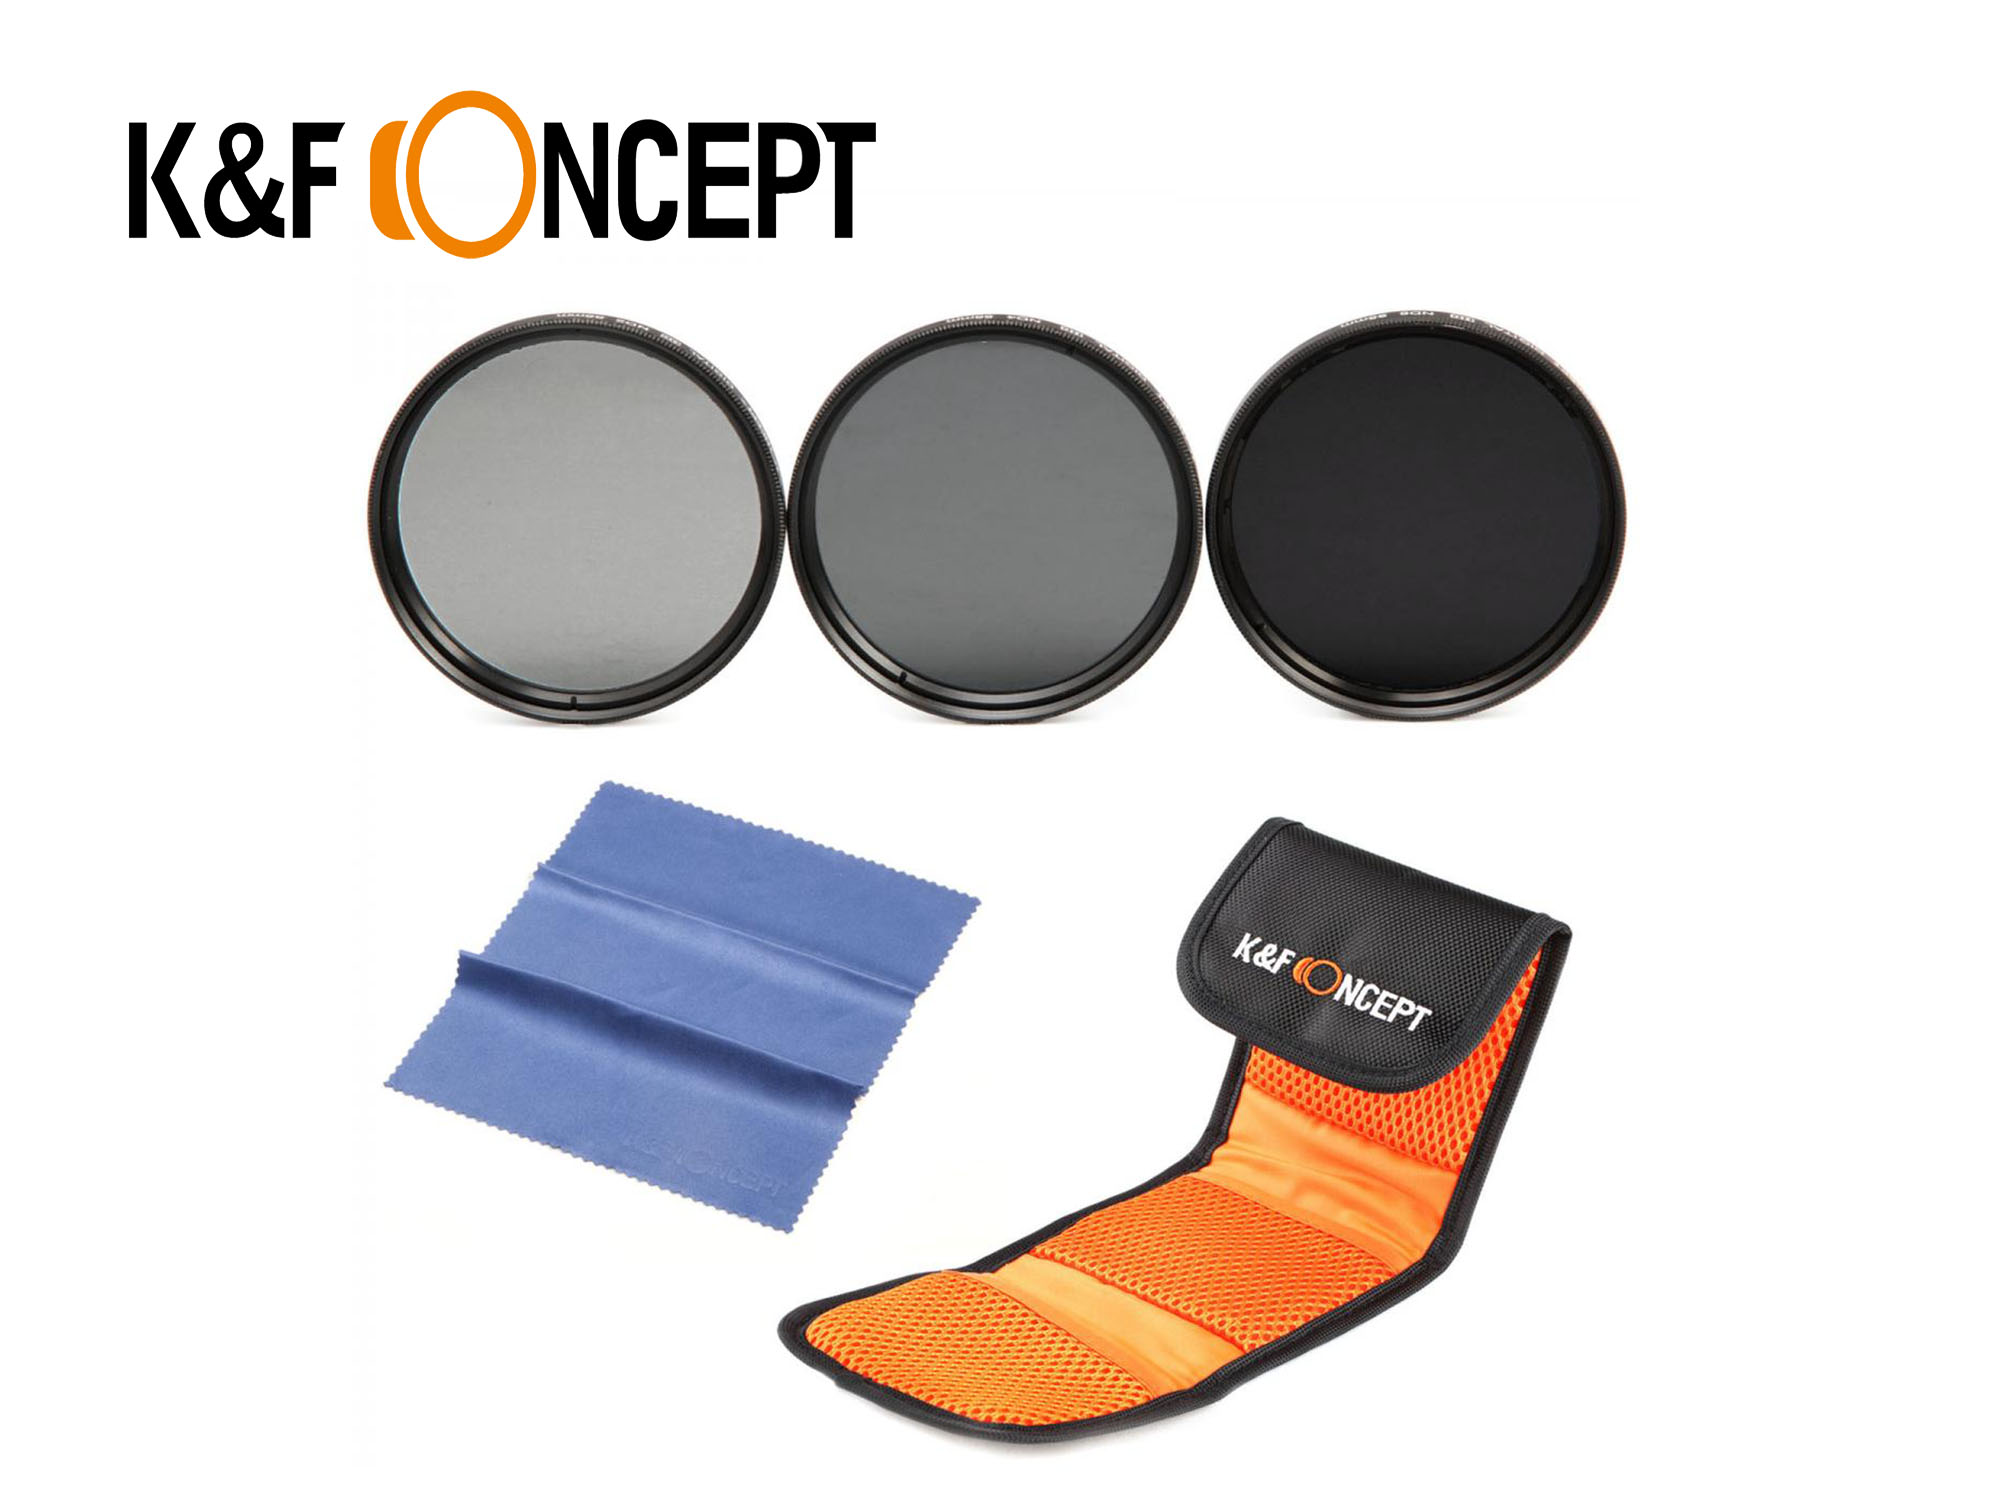 KNDSet52 - 52mm Filter Set - K&F Concept